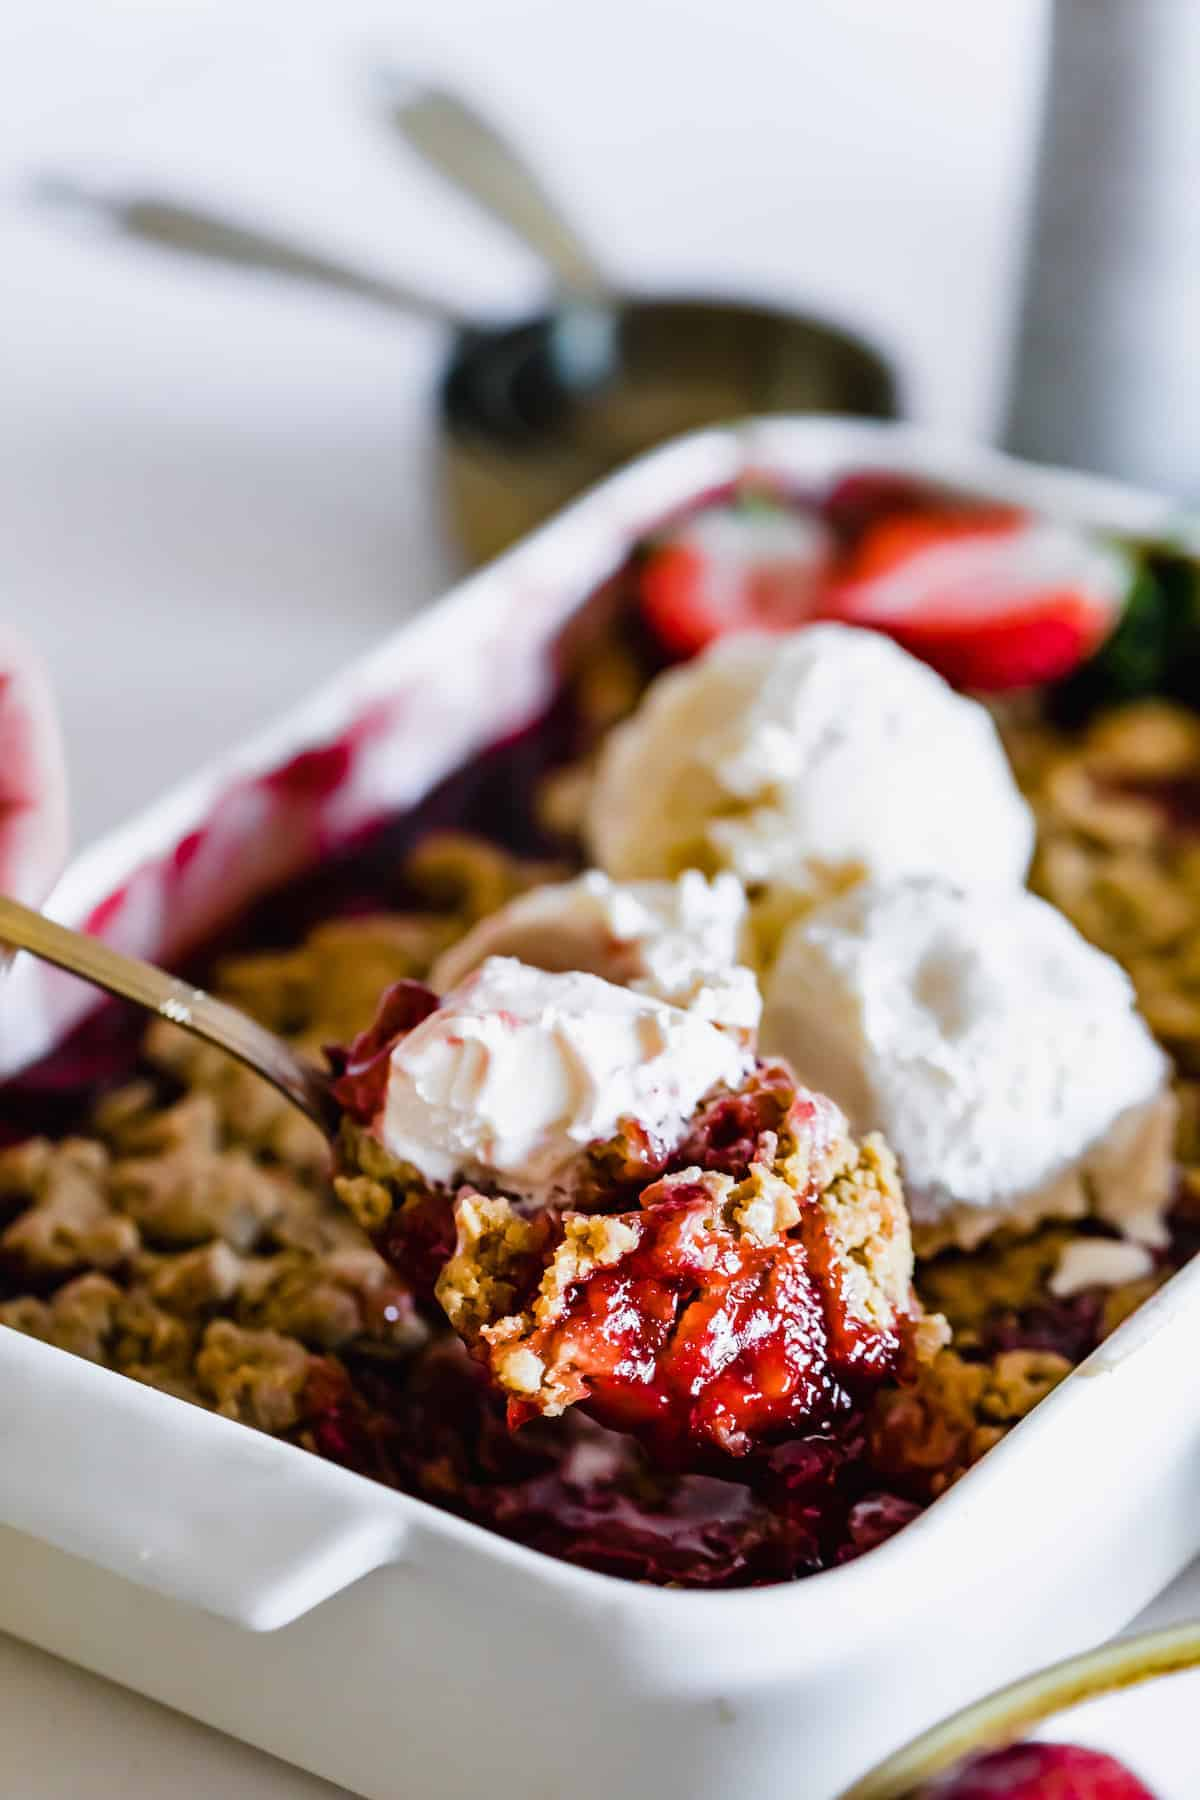 A Metal Spoon Holding a Scoop of Strawberry Crumble Over a Pan Full of the Dessert